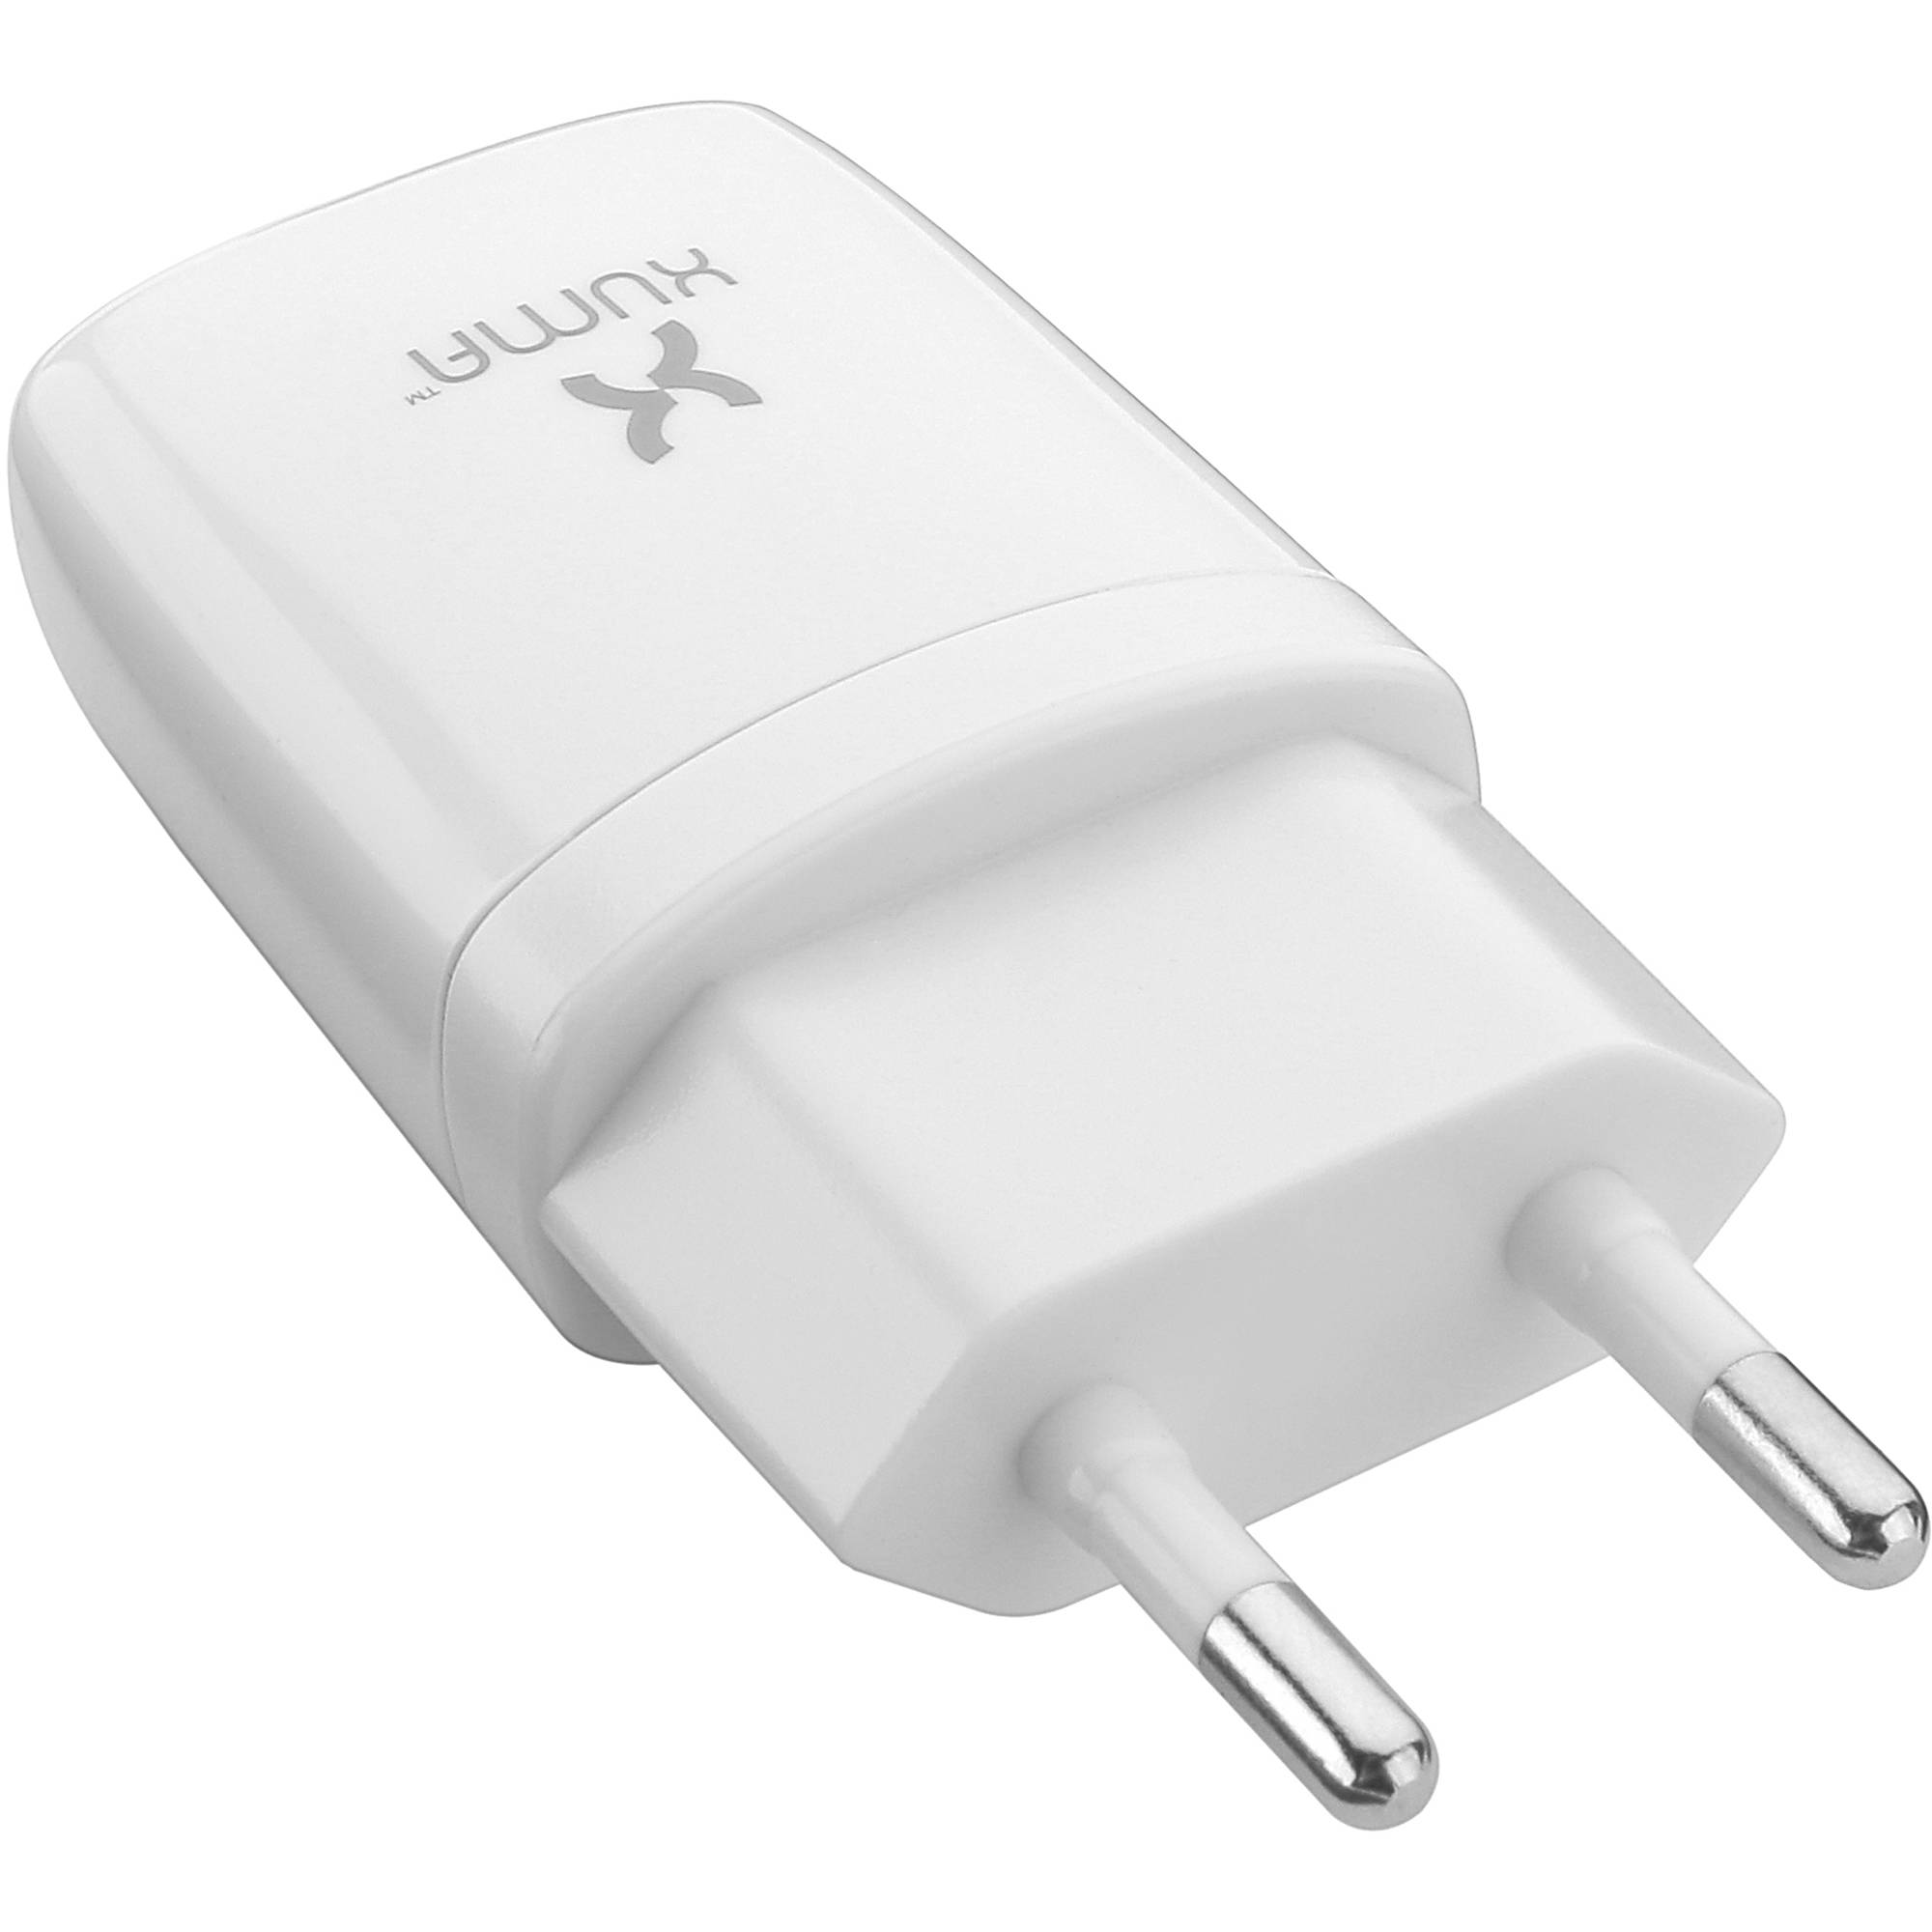 xuma_ucac_124e_usb_wall_charger_europe_1143907.jpg